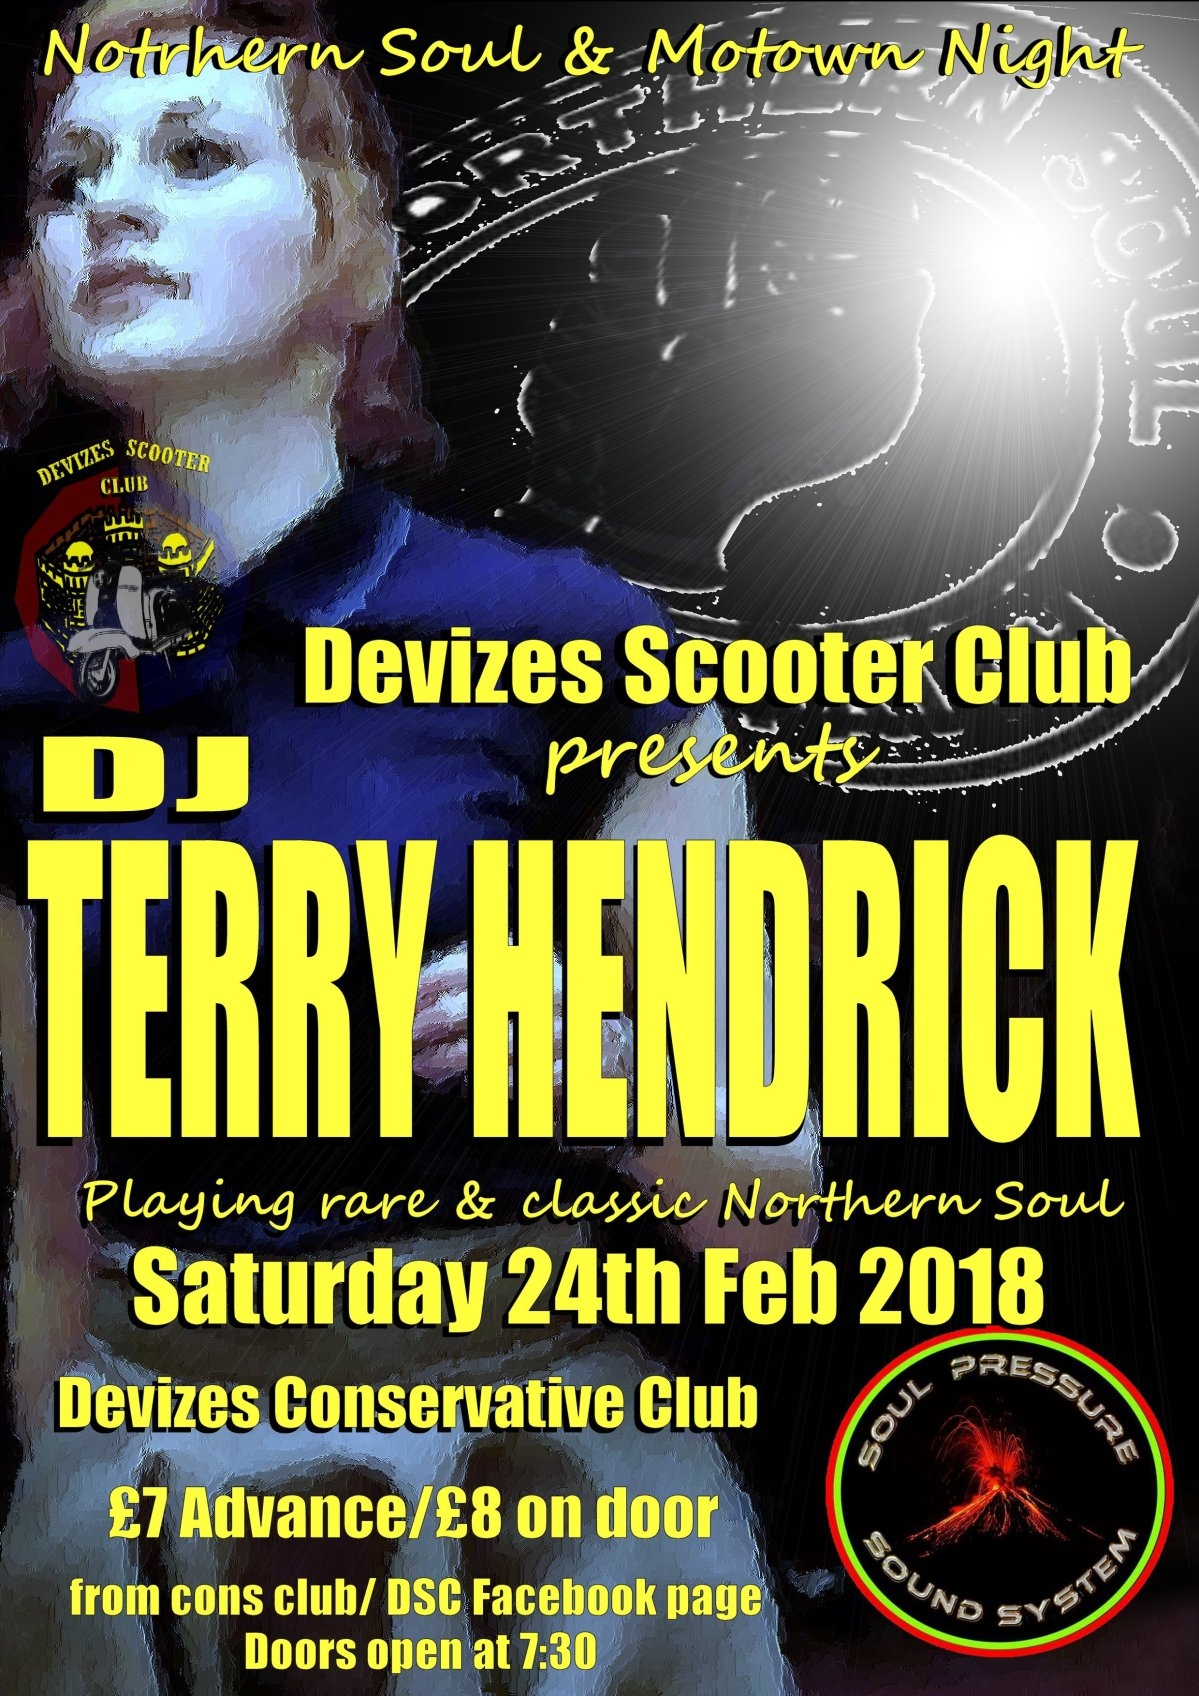 Devizes to get a warm spell of Northern Soul in February, via DJ TerryHendrick